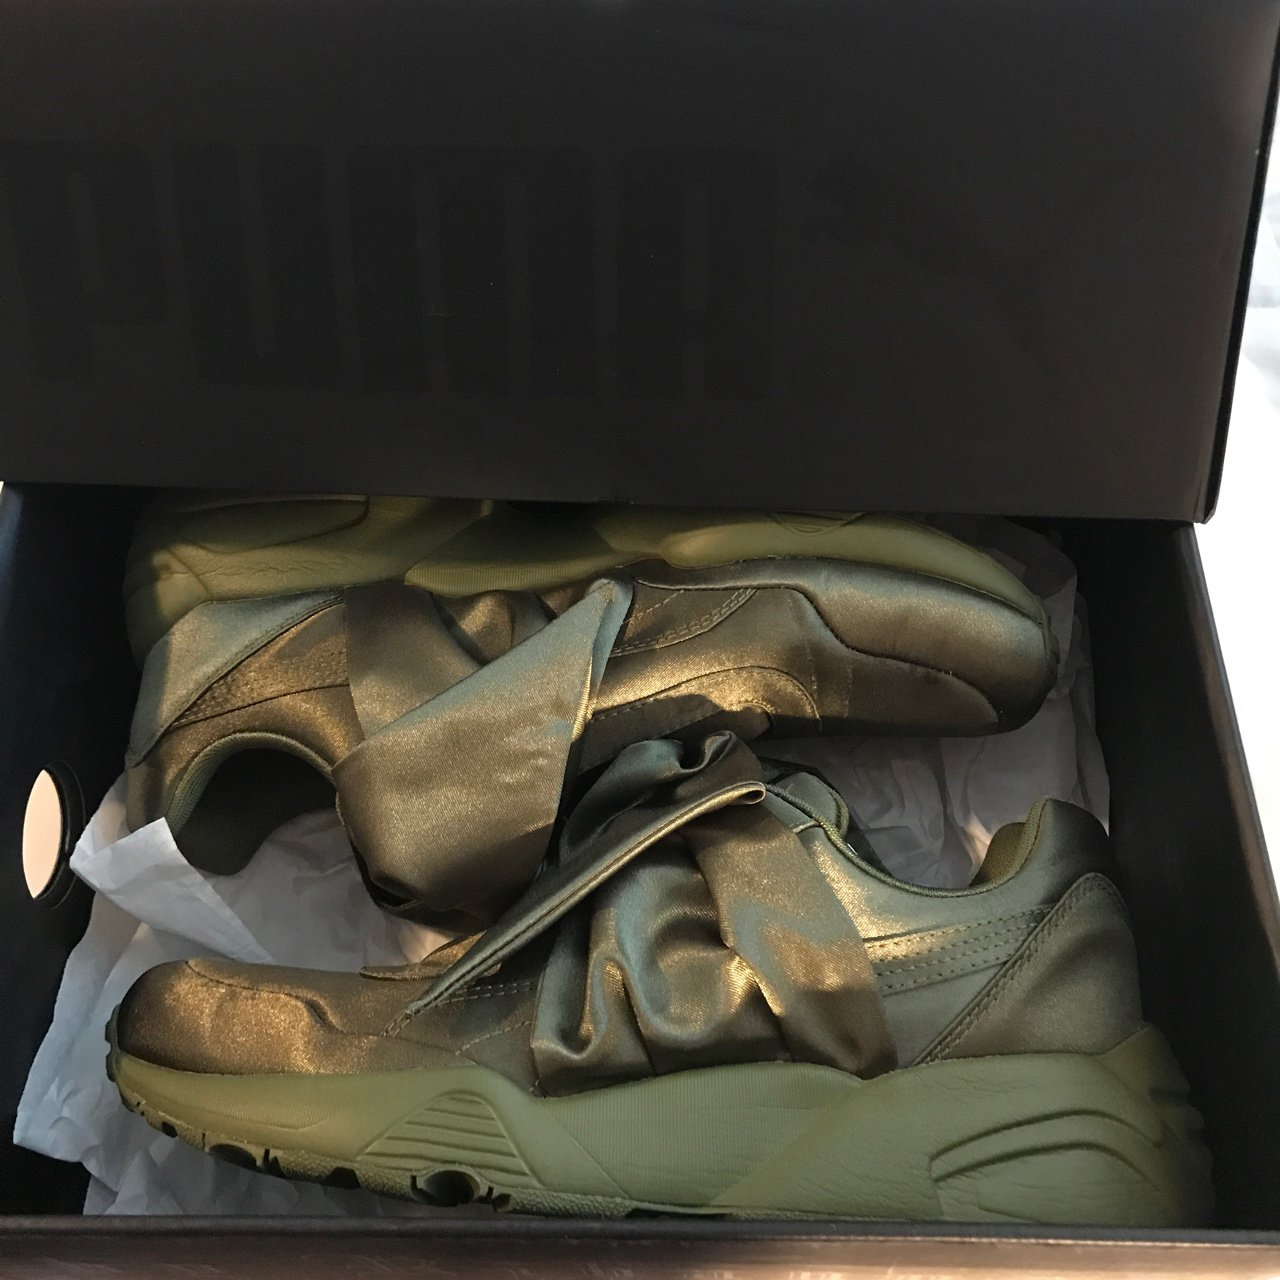 bf79f41d091 Fenty by Rihanna Bow Sneakers color  Olive Green size  7 - Depop